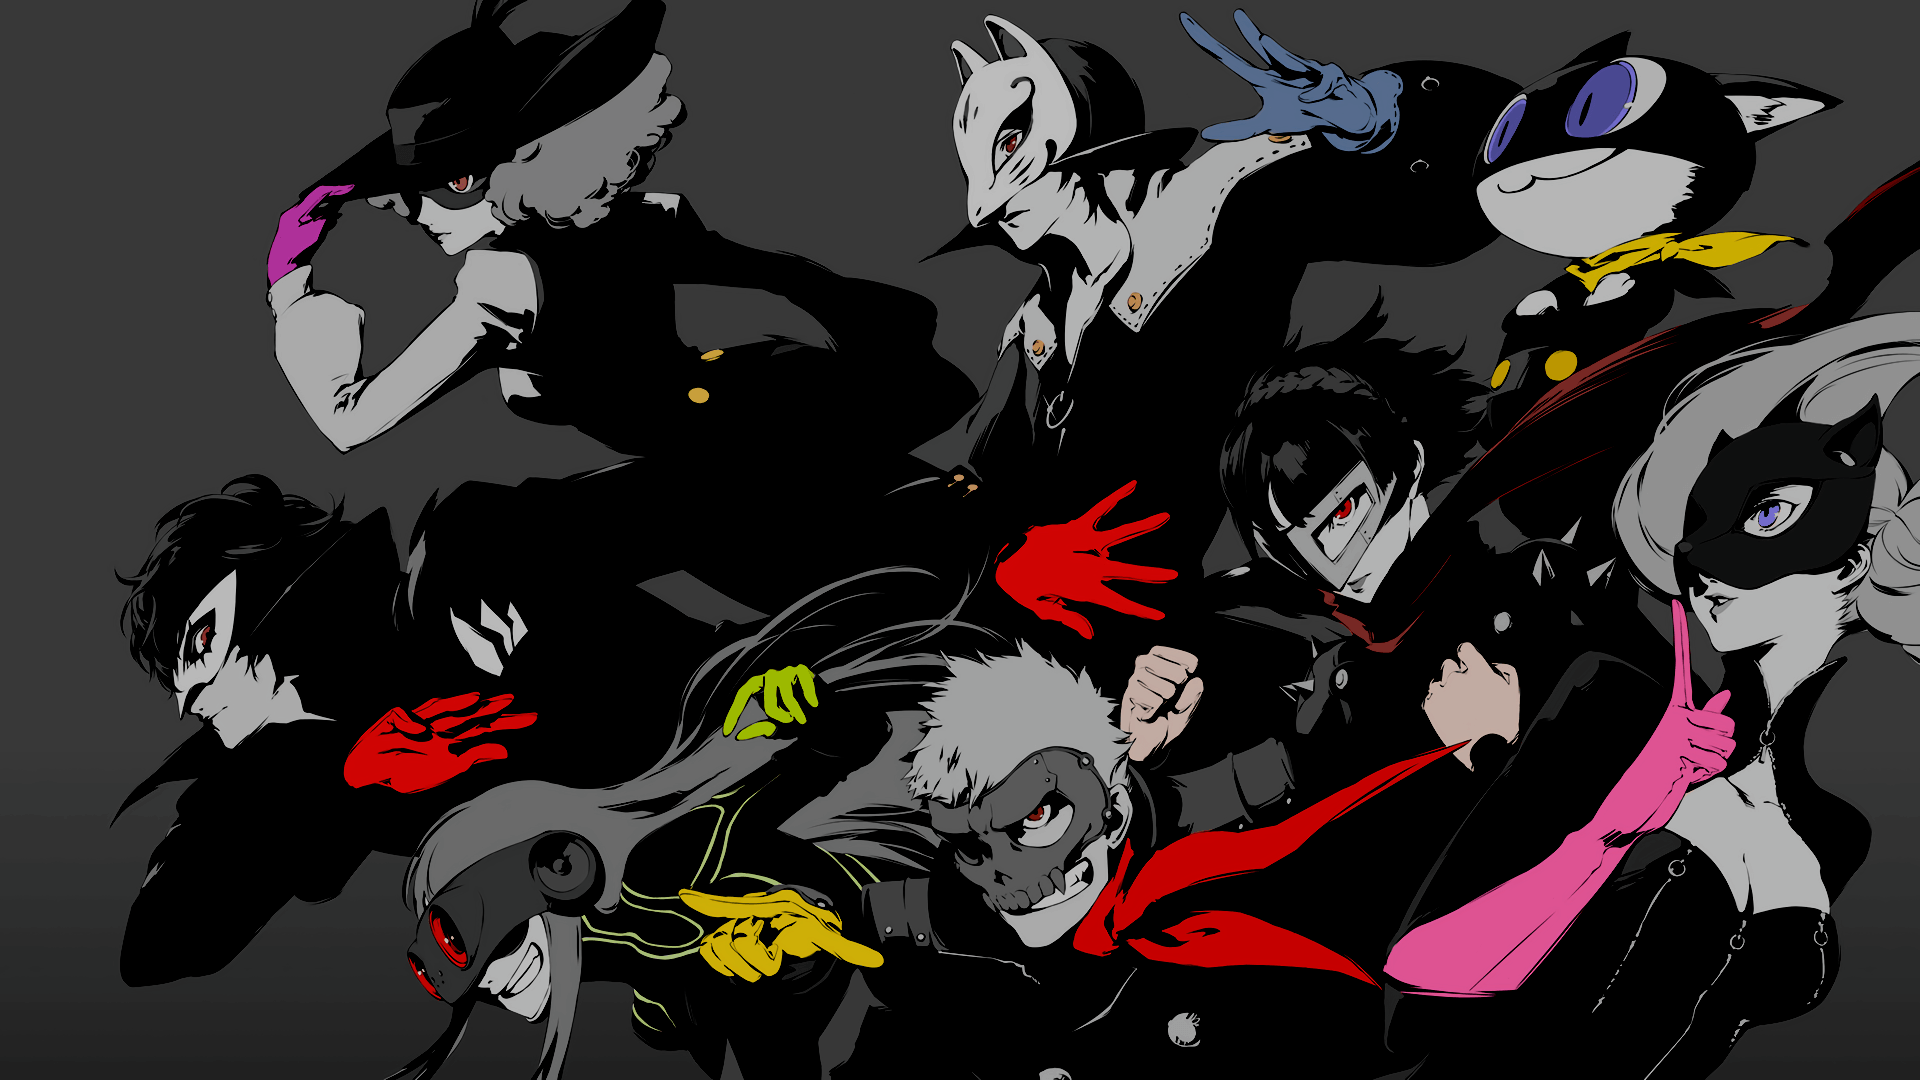 Selective Coloring) Persona 5 Wallpapers